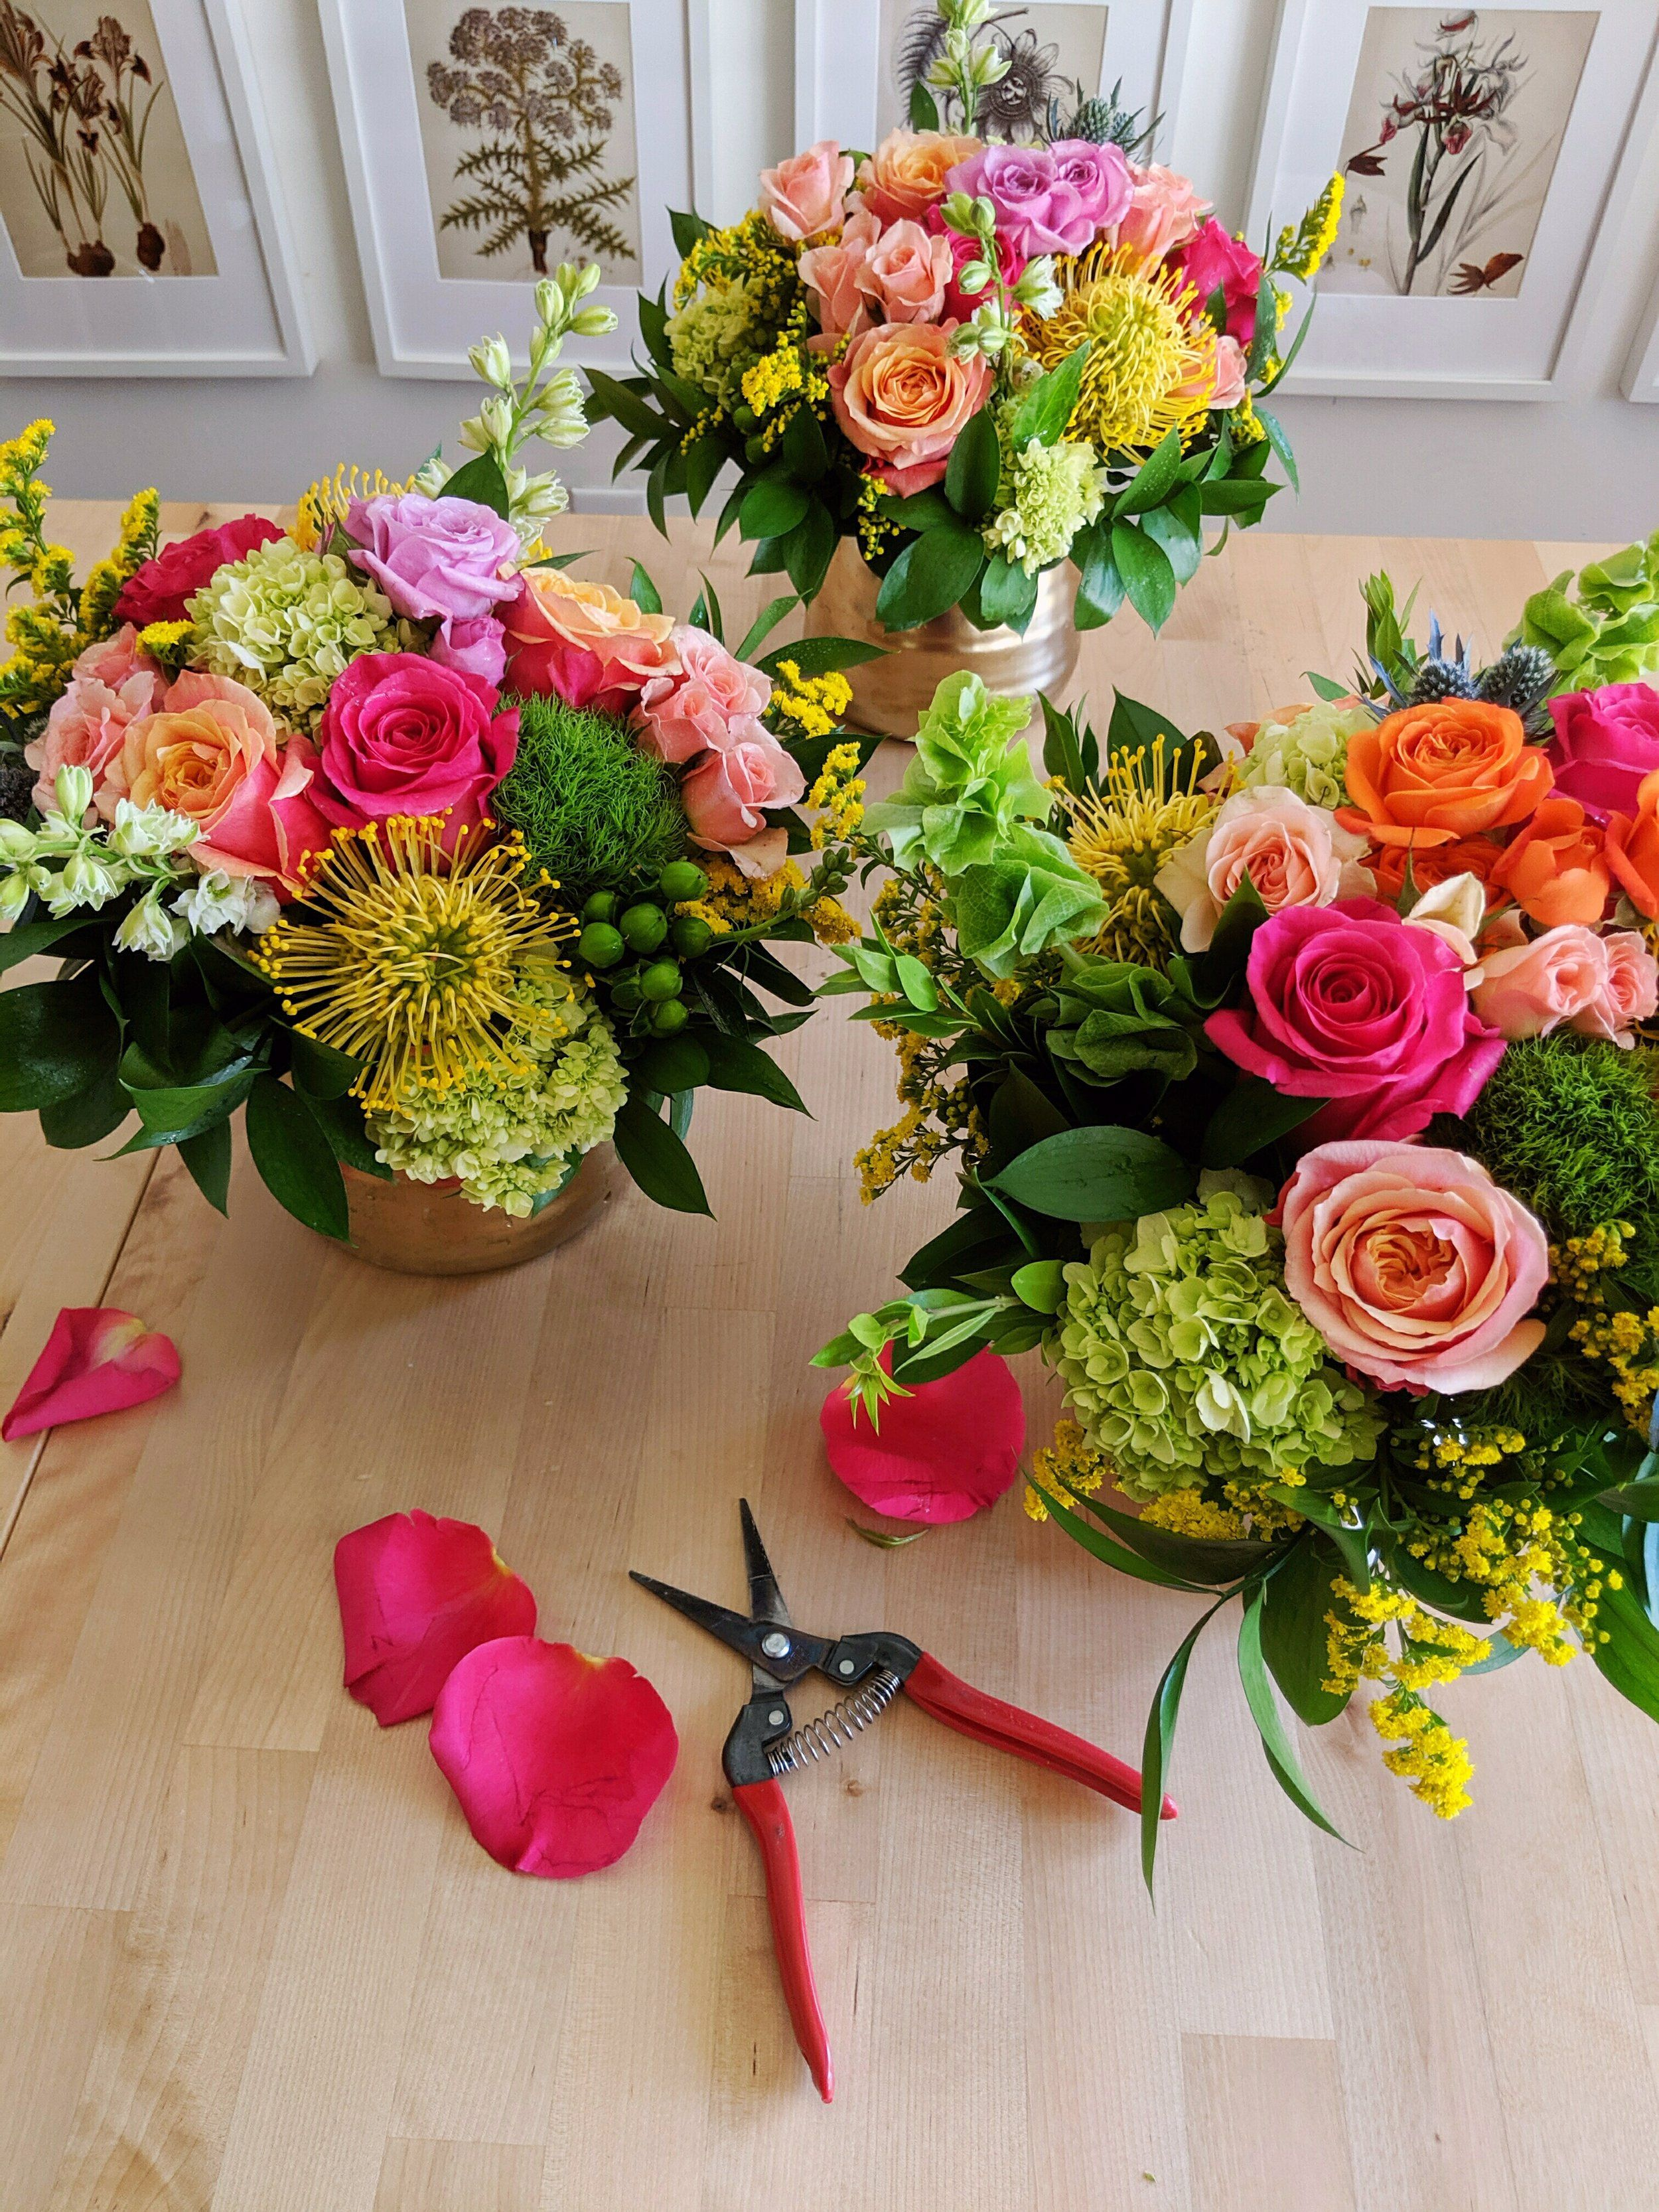 How to choose a great local florist Same day flower